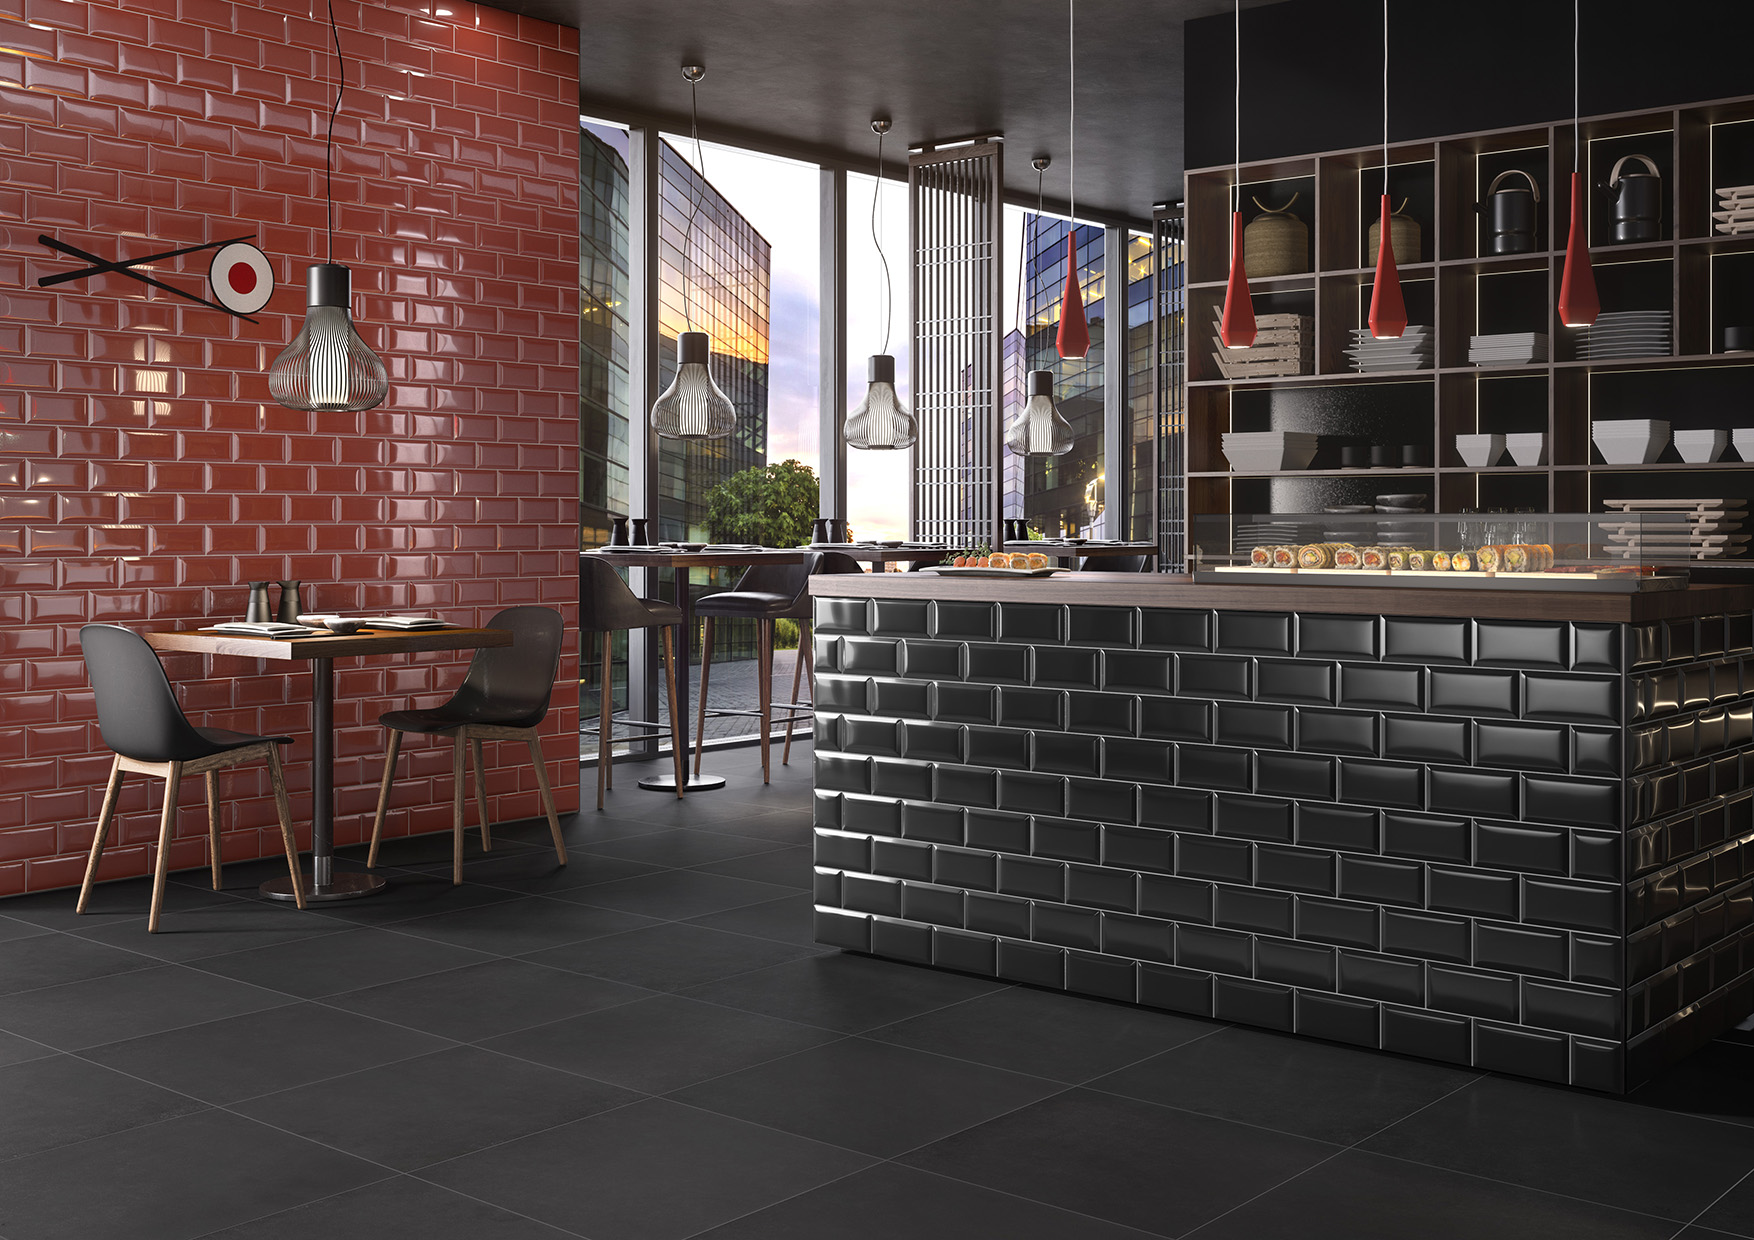 Metro Fliesen Trend New Tiles For 2019 By Villeroy Boch New Wall Concept Inspired By